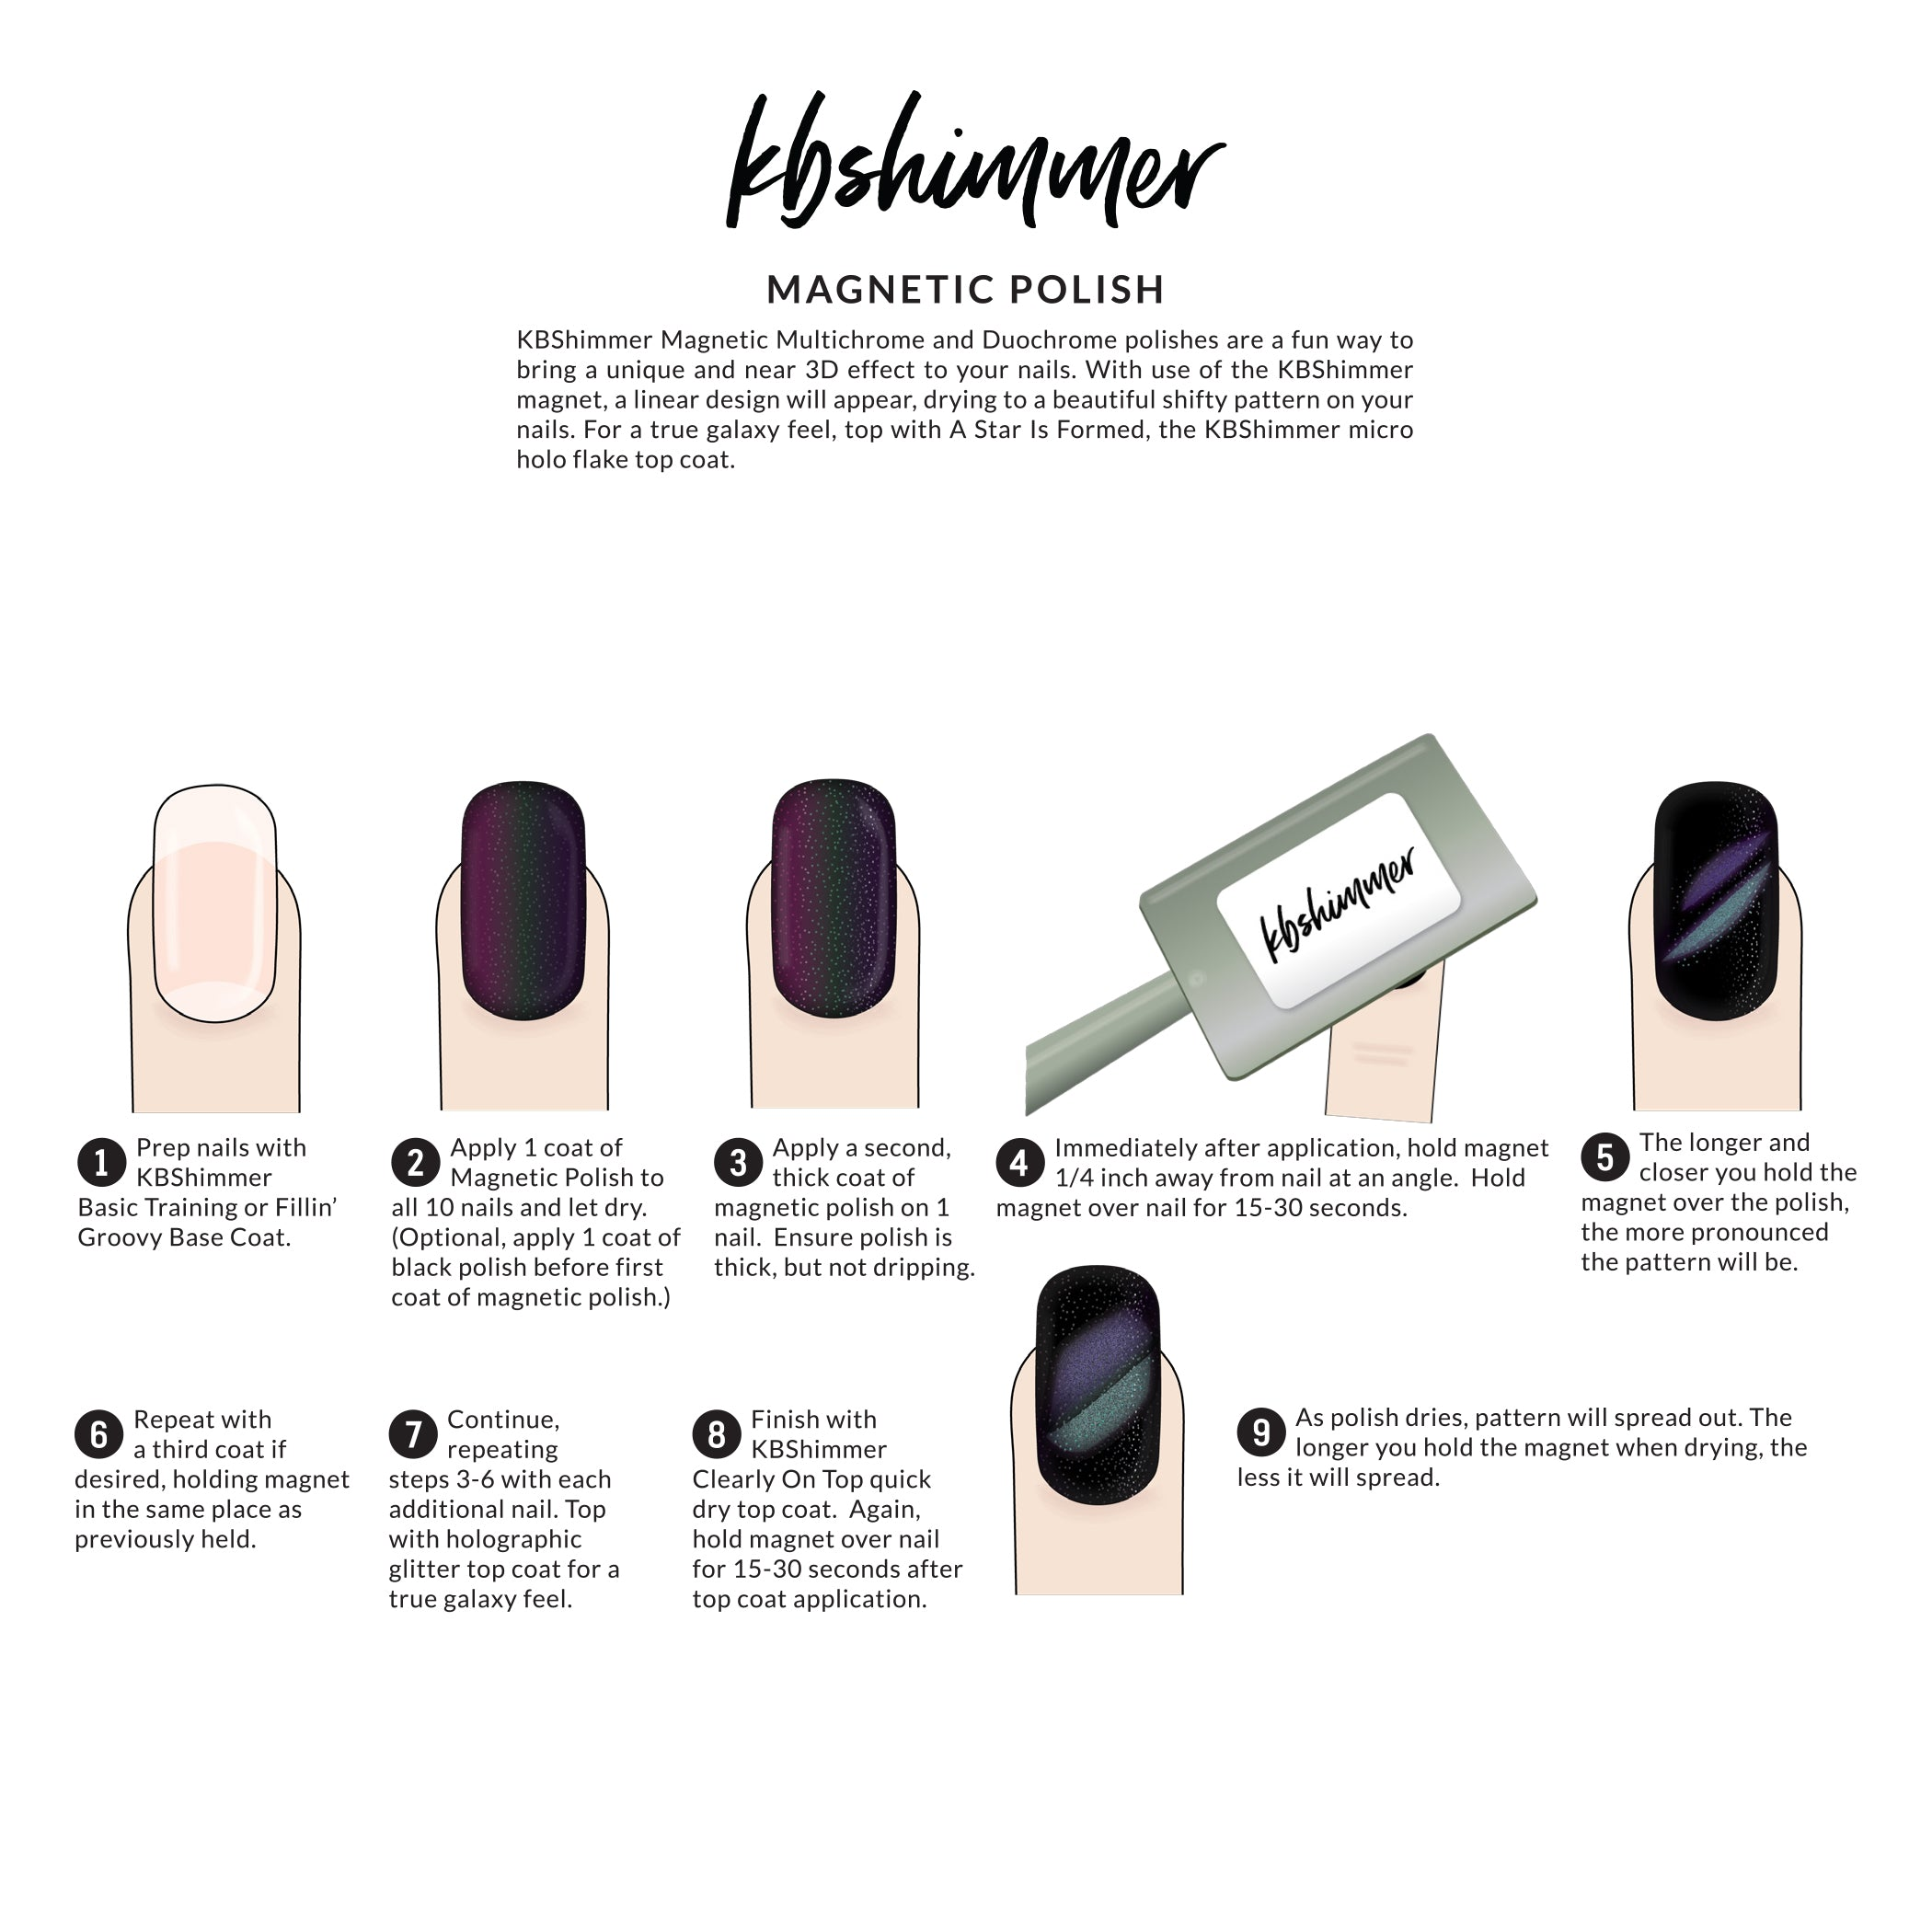 THRUST ISSUES LAUNCH MULTICHROME MAGNETIC NAIL POLISH